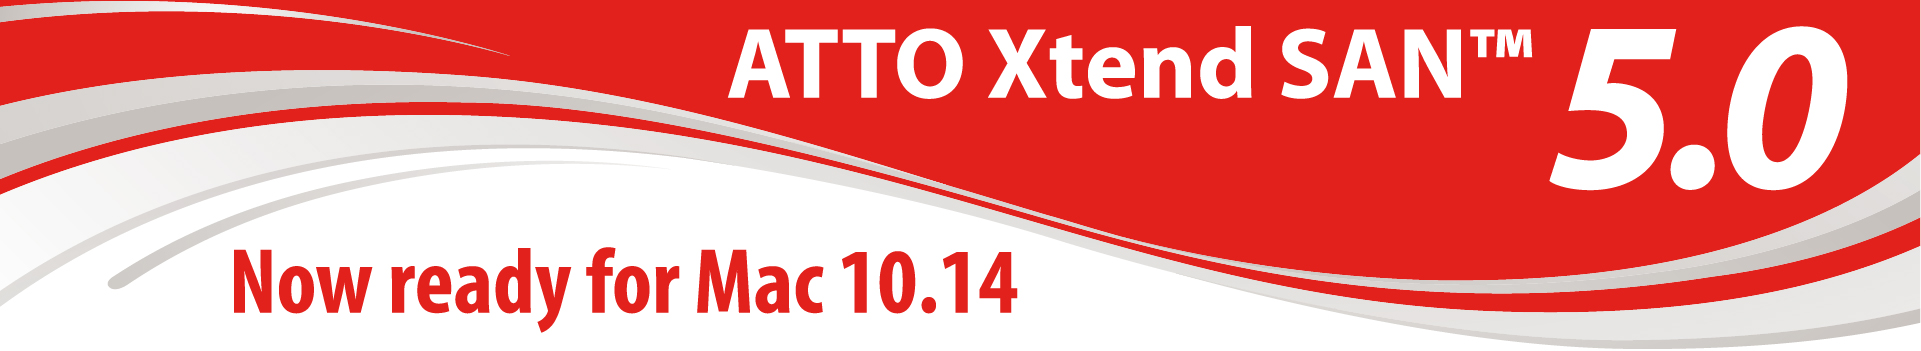 ATTO Xtend SAN 5.0 - Now ready for Mac 10.14